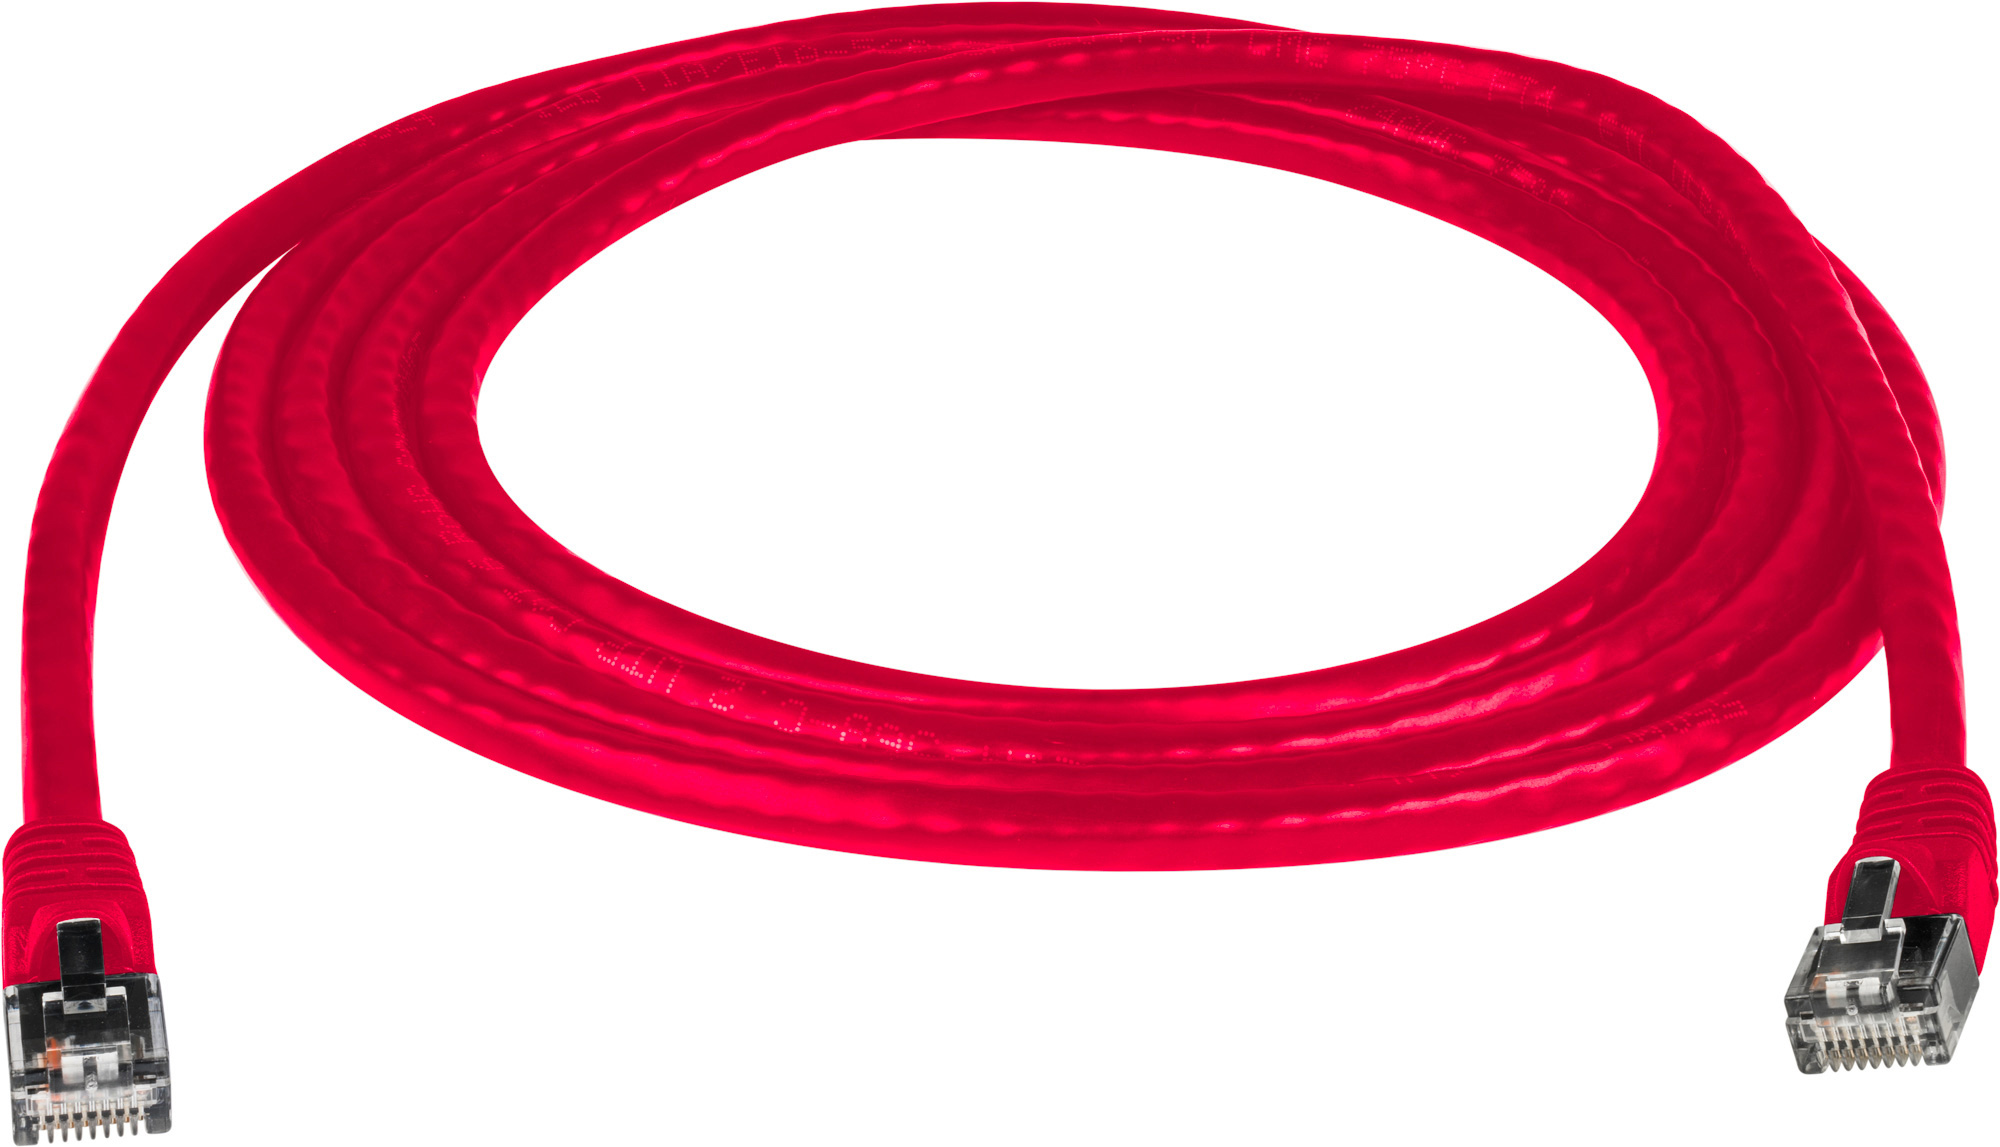 Molded Utp Cat6 Patch Cable 24awg 50u 15 Foot Red